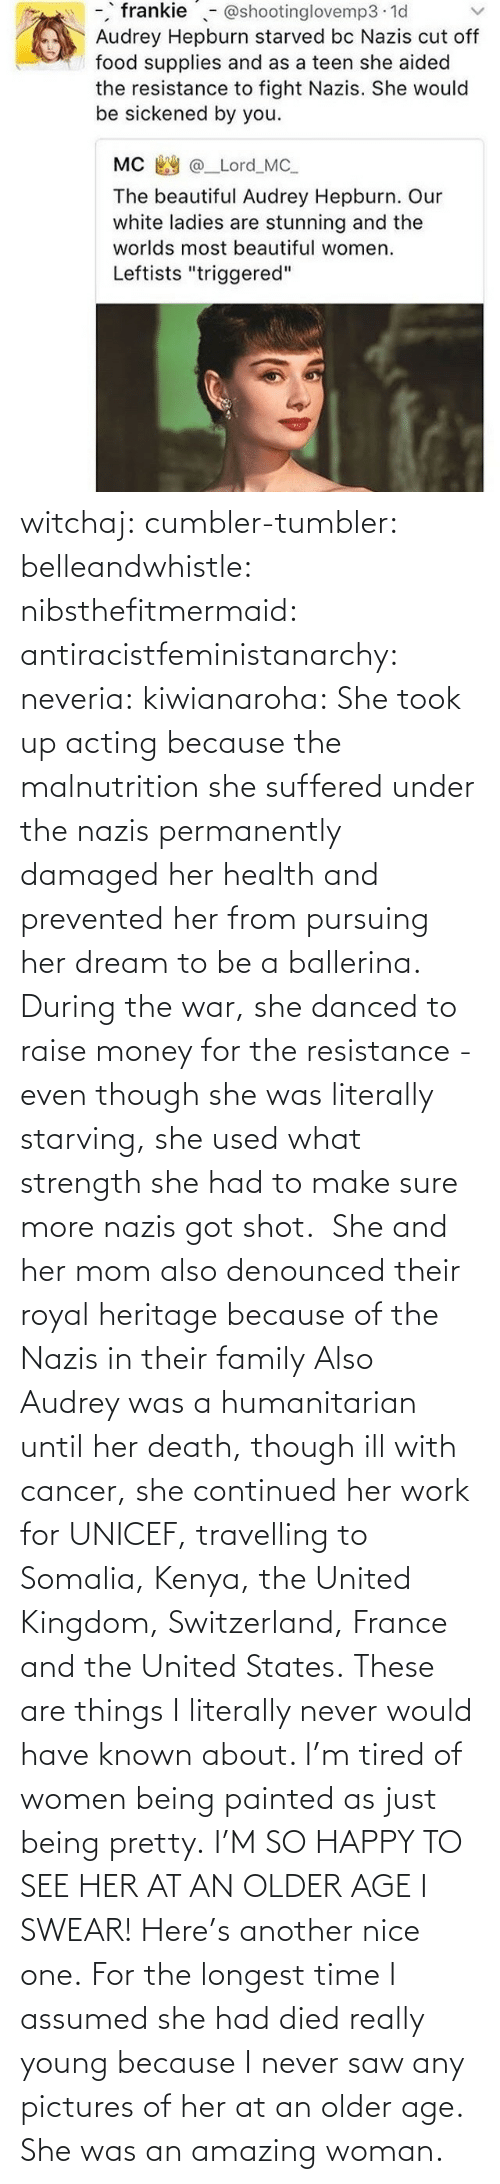 United: witchaj: cumbler-tumbler:  belleandwhistle:  nibsthefitmermaid:  antiracistfeministanarchy:  neveria:  kiwianaroha: She took up acting because the malnutrition she suffered under the nazis permanently damaged her health and prevented her from pursuing her dream to be a ballerina. During the war, she danced to raise money for the resistance - even though she was literally starving, she used what strength she had to make sure more nazis got shot.  She and her mom also denounced their royal heritage because of the Nazis in their family  Also Audrey was a humanitarian until her death, though ill with cancer, she continued her work for UNICEF, travelling to Somalia, Kenya, the United Kingdom, Switzerland, France and the United States.  These are things I literally never would have known about. I'm tired of women being painted as just being pretty.  I'M SO HAPPY TO SEE HER AT AN OLDER AGE I SWEAR!  Here's another nice one.   For the longest time I assumed she had died really young because I never saw any pictures of her at an older age.  She was an amazing woman.